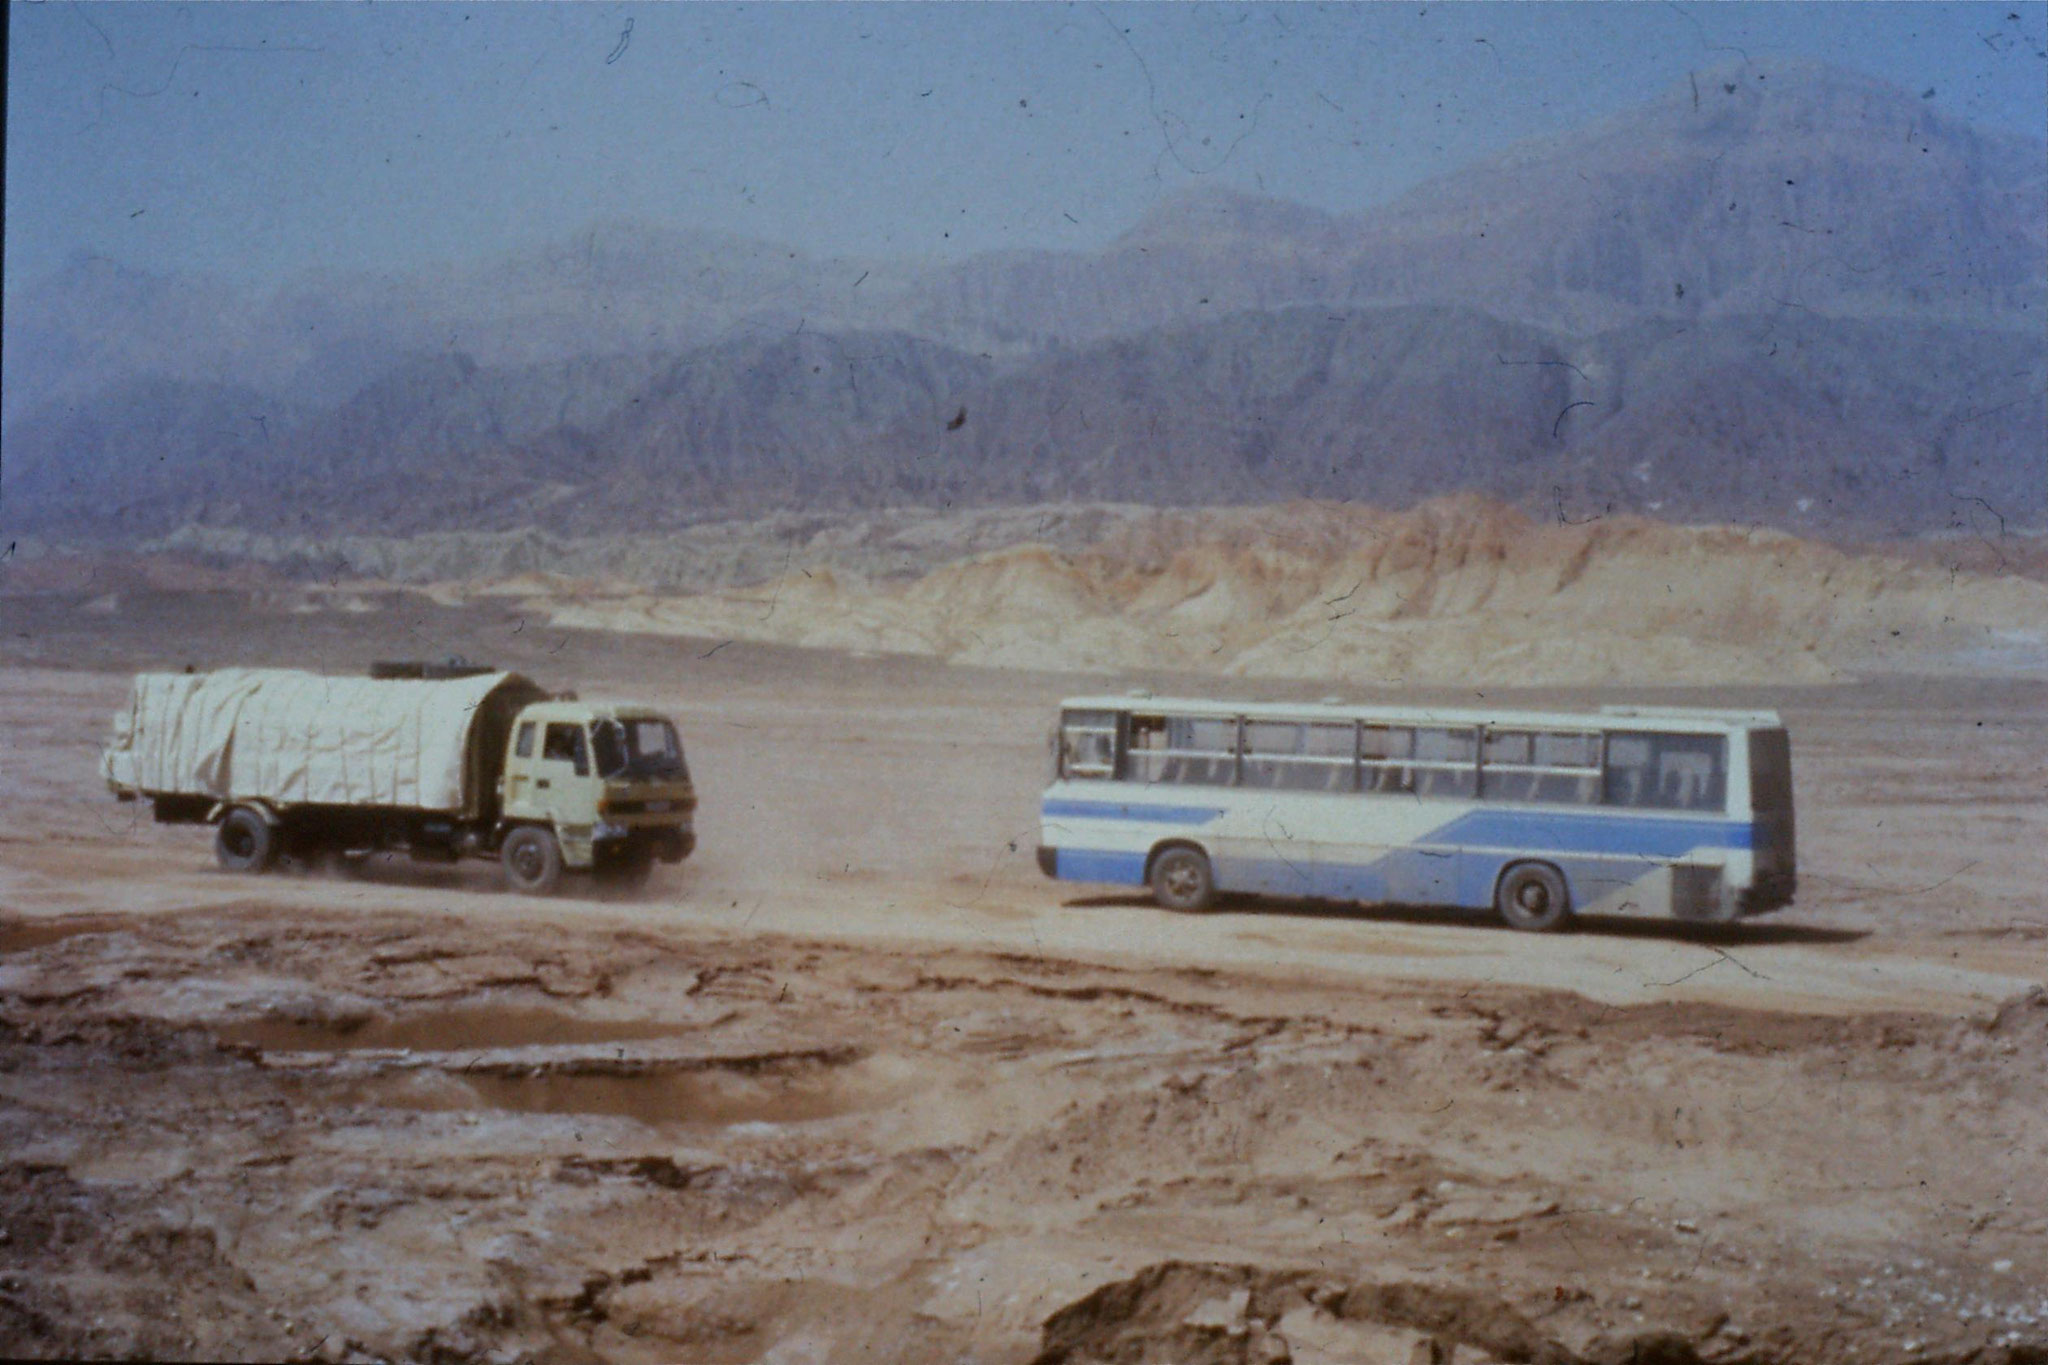 6/9/1989:13: our bus going over bumpy ground